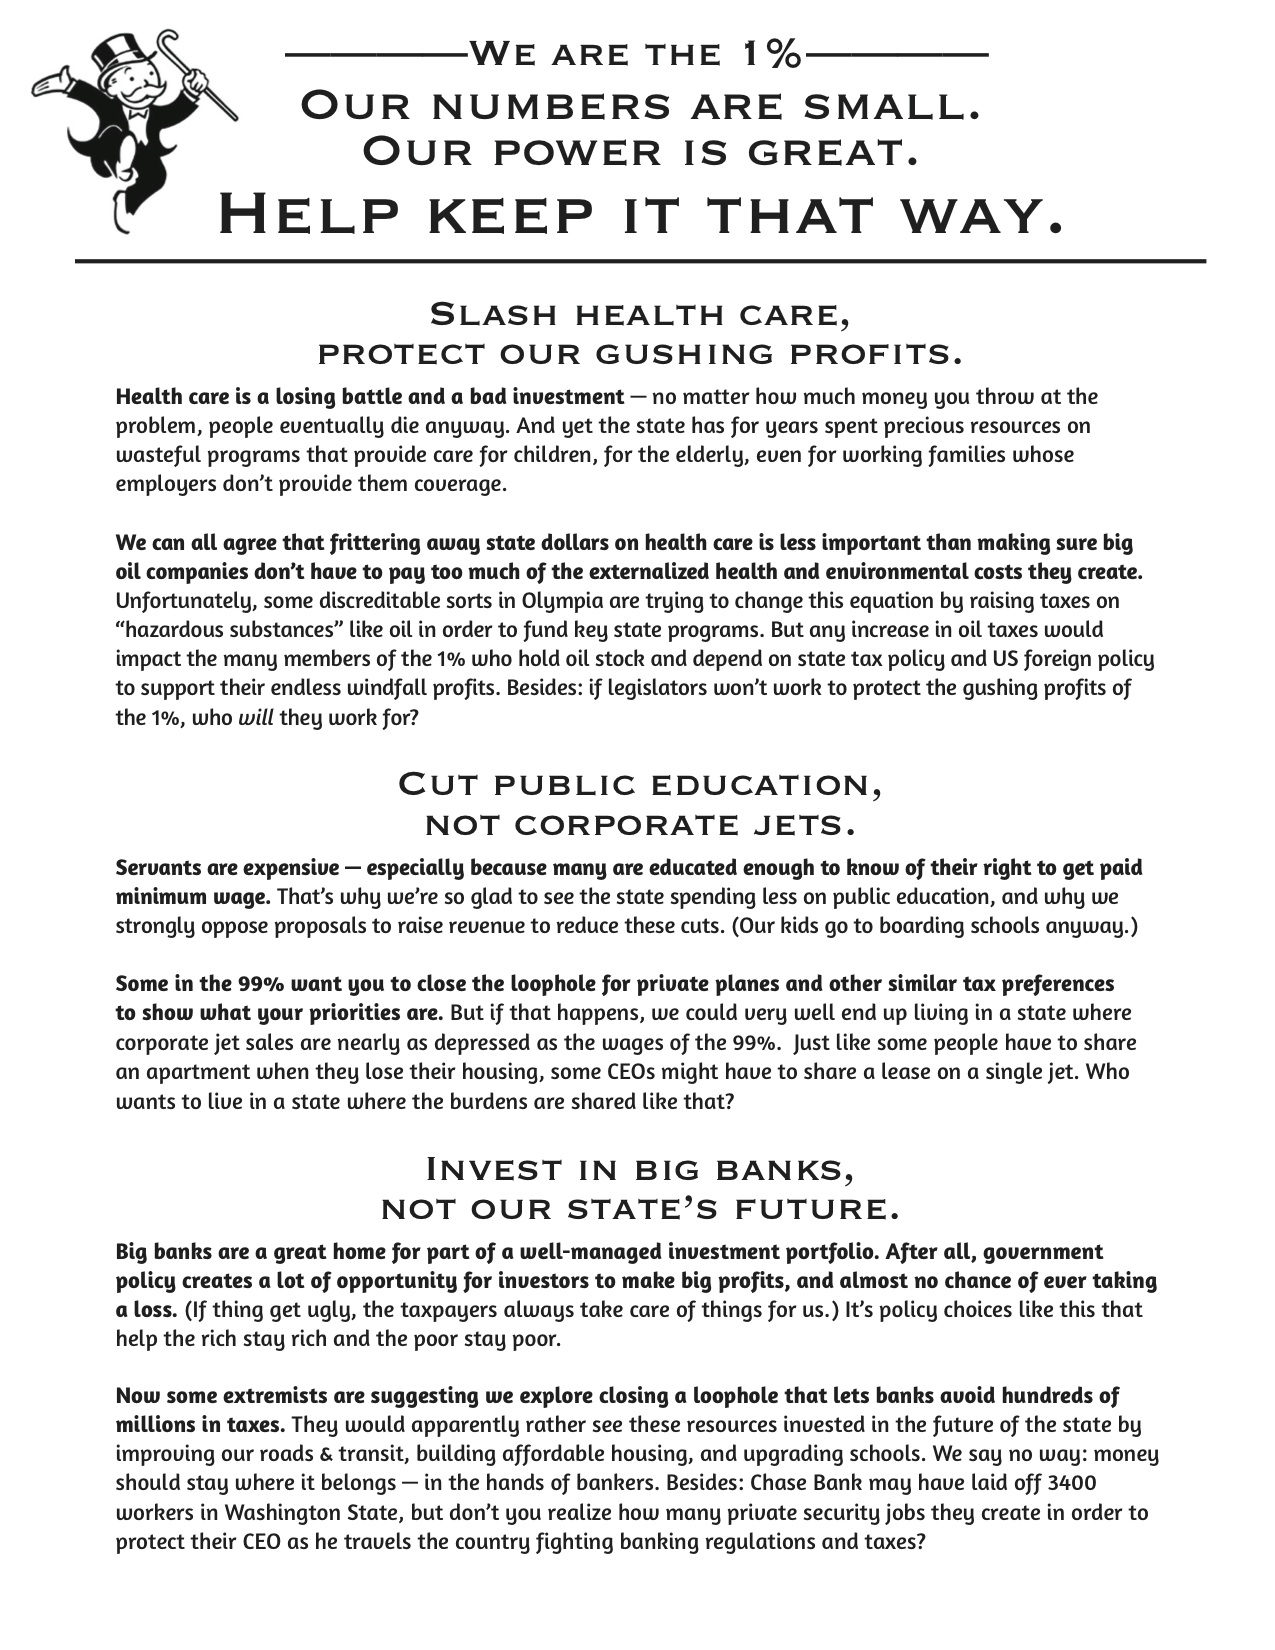 leaflet of the 1%